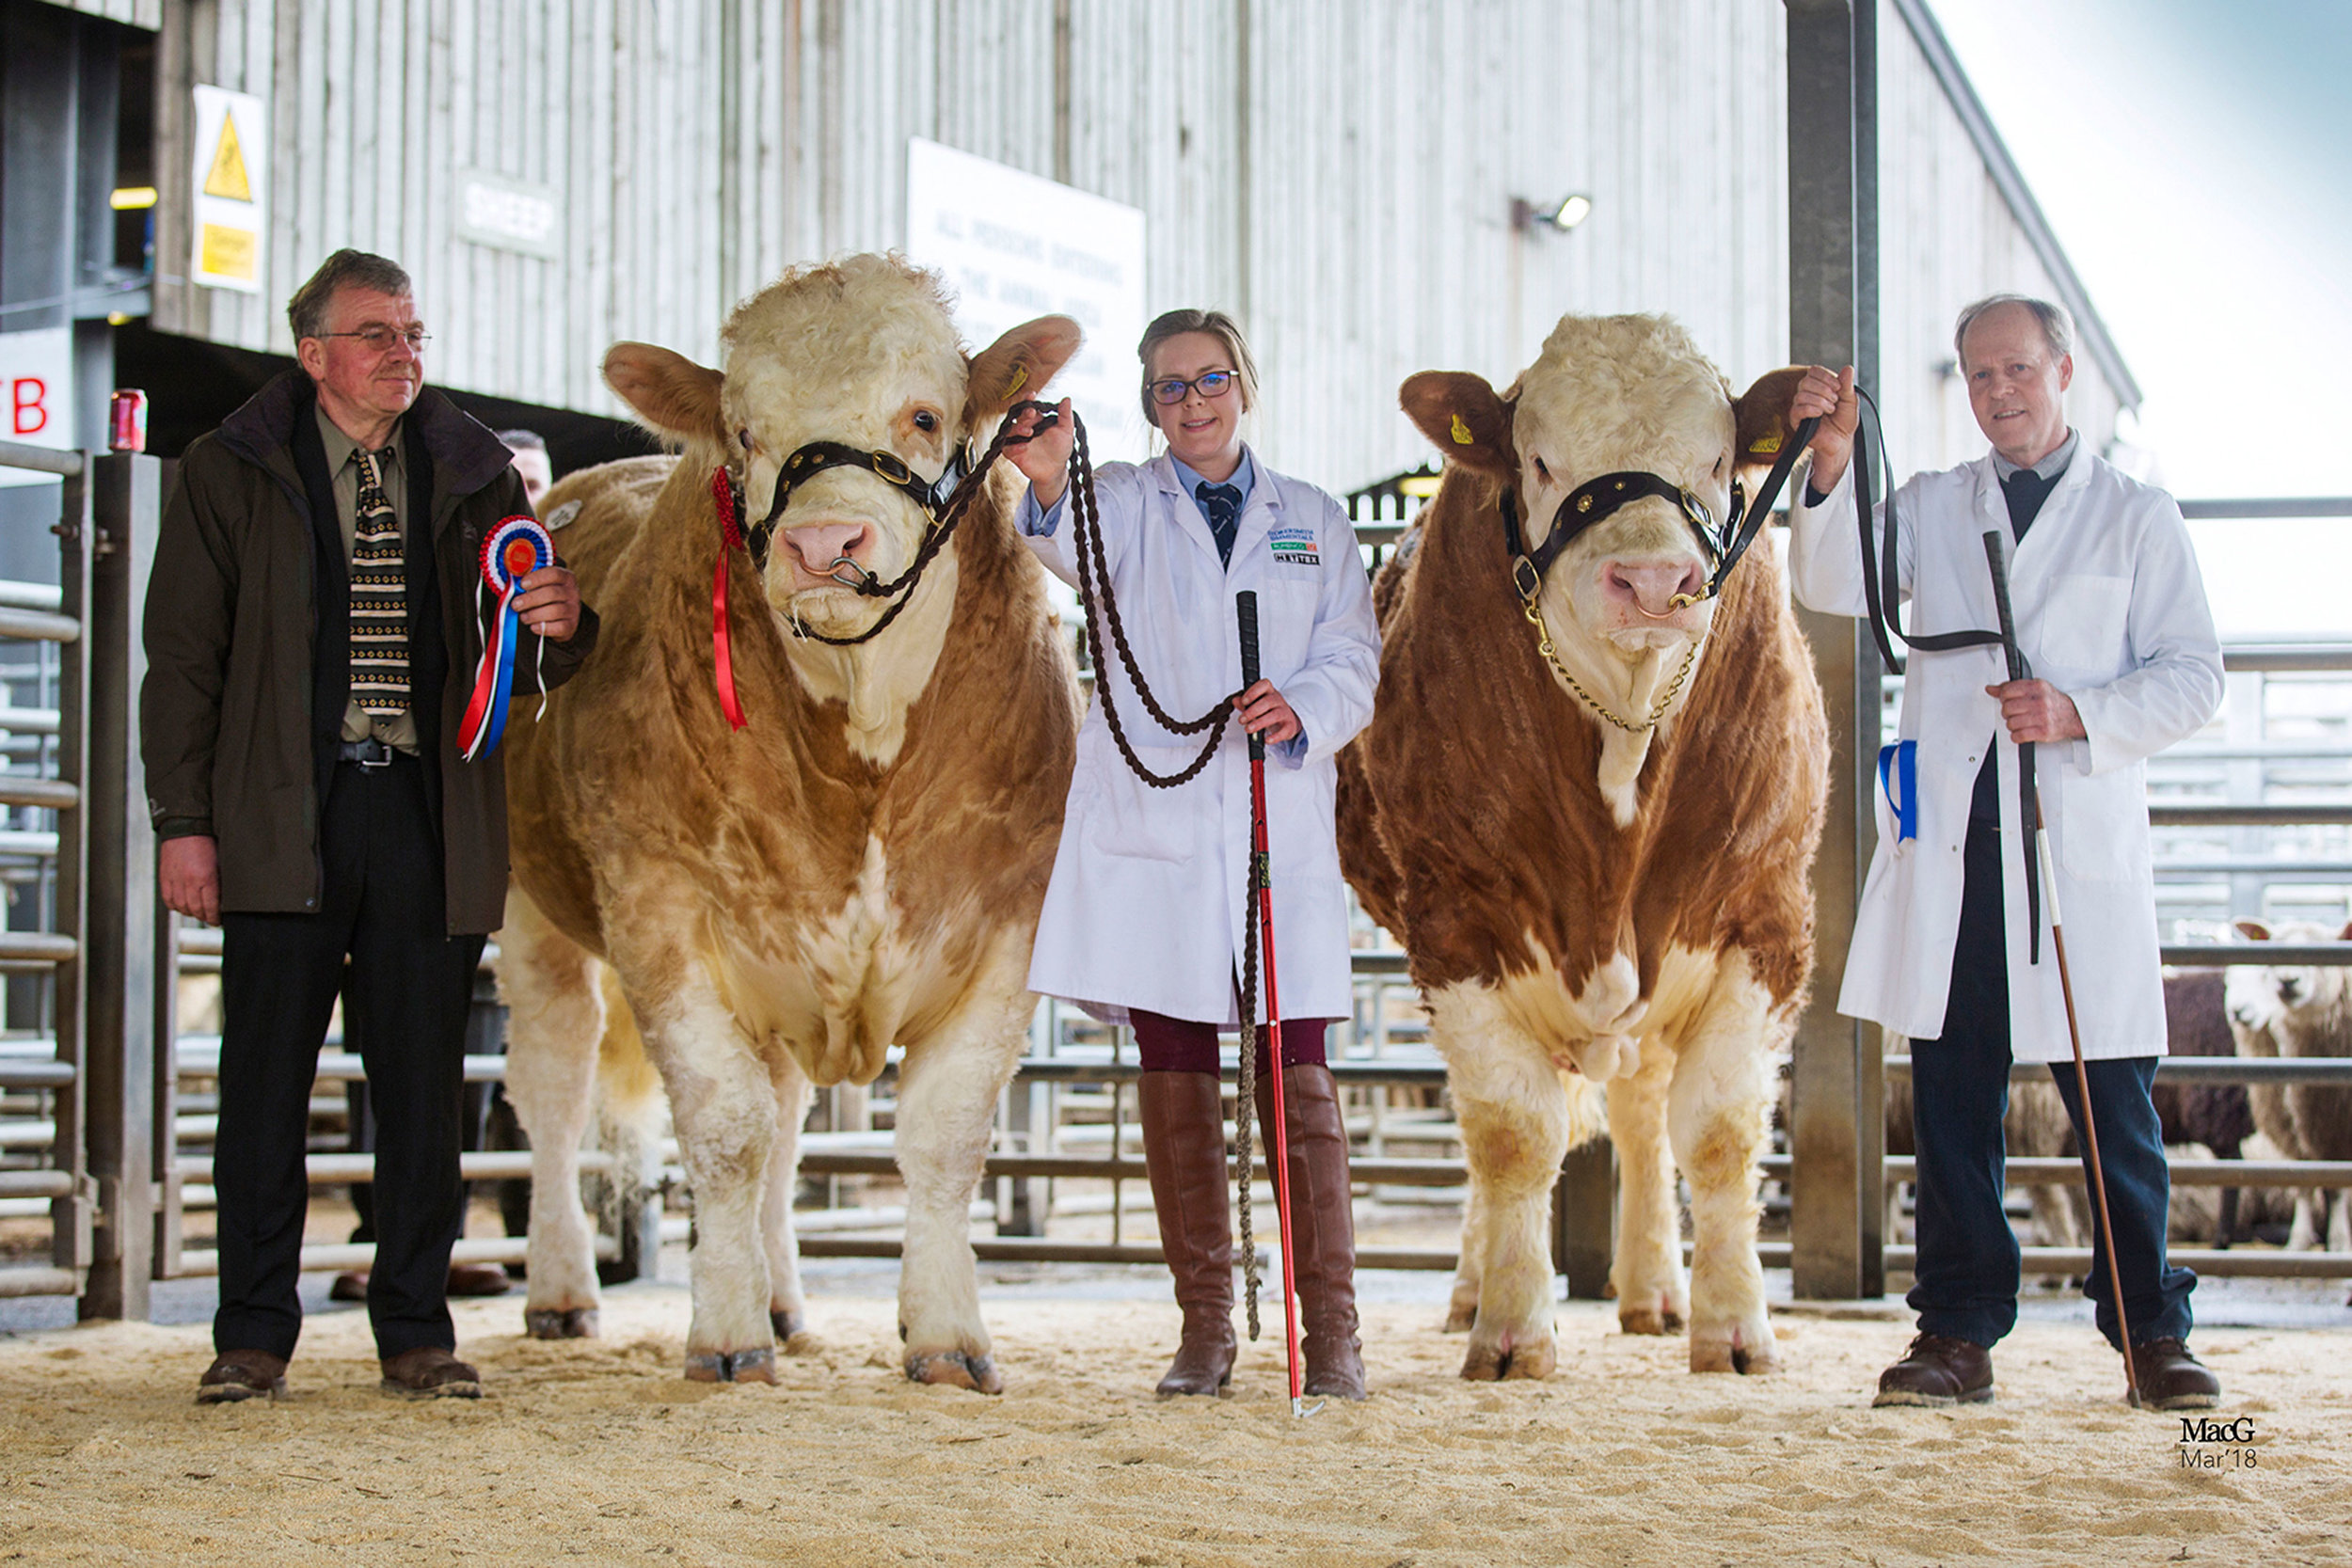 Pictured on the left is the Male & Overall Champion Storersmith Heart-Throb 16 and on the right is the Reserve Male Champion Grangewood Heston 16